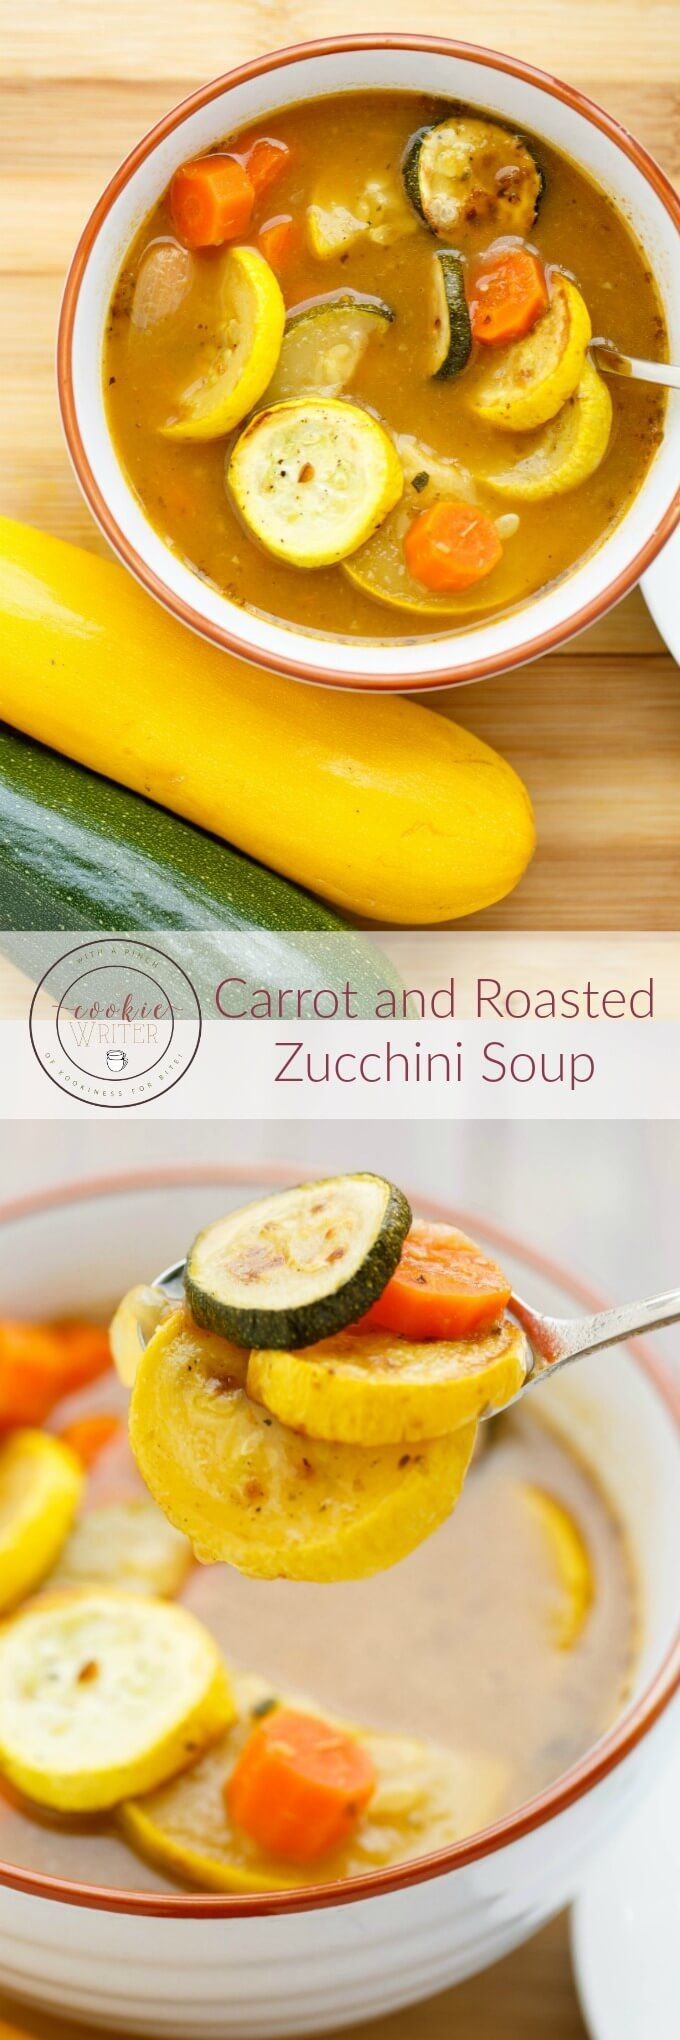 Carrot and Roasted Zucchini Soup | http://thecookiewriter.com | @thecookiewriter | #soup